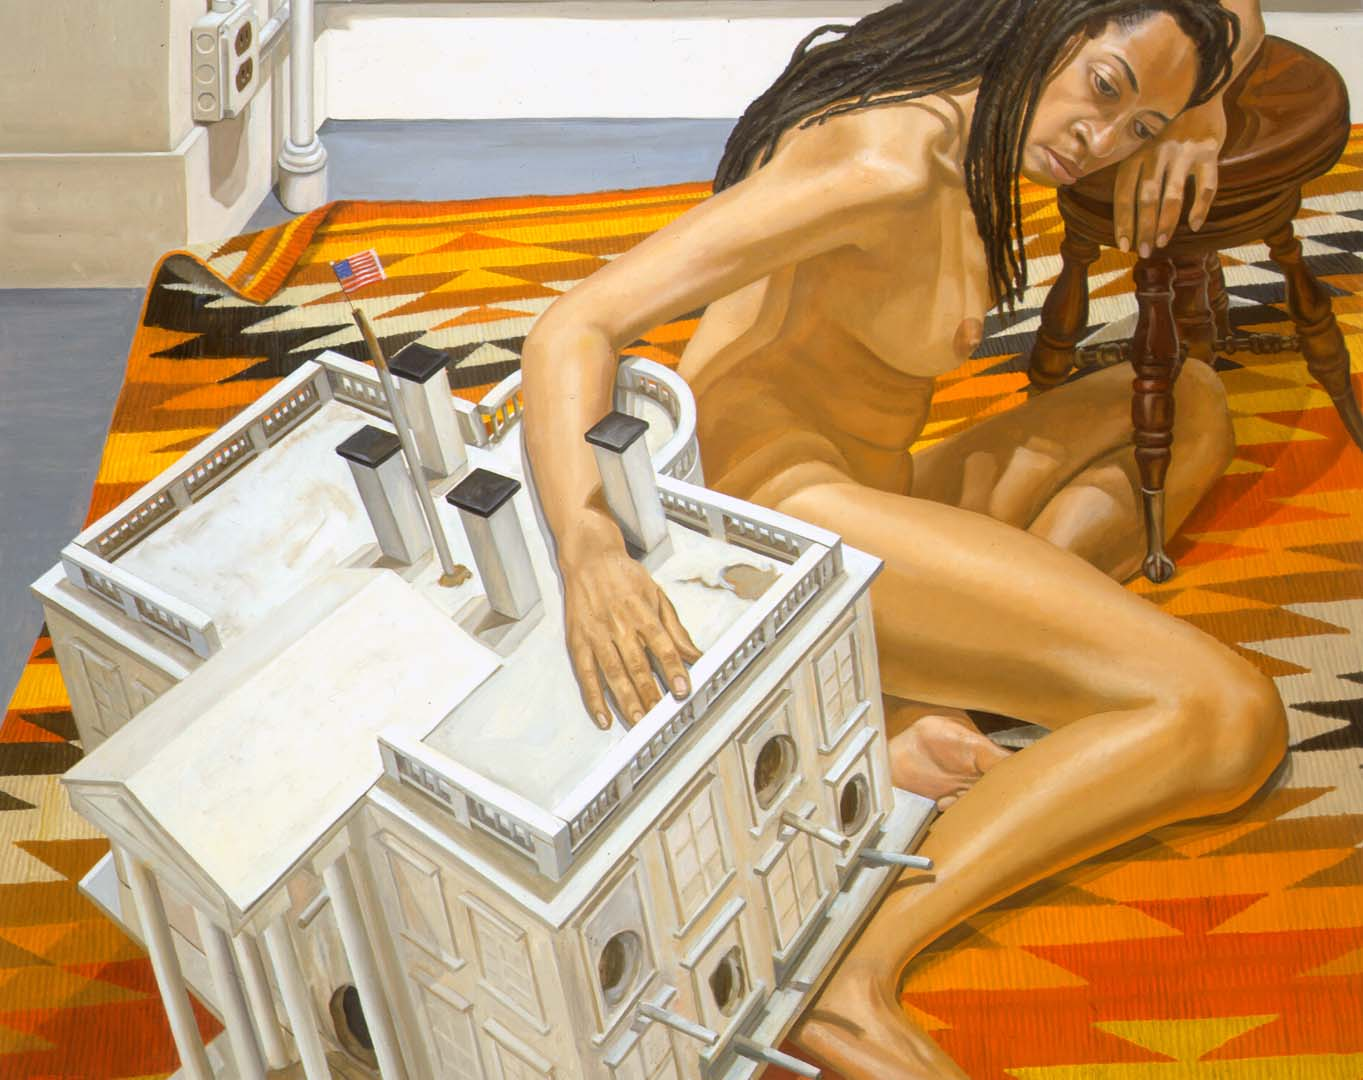 2000 Model with Dreadlocks and White House as Birdhouse Oil on Canvas 48 x 60